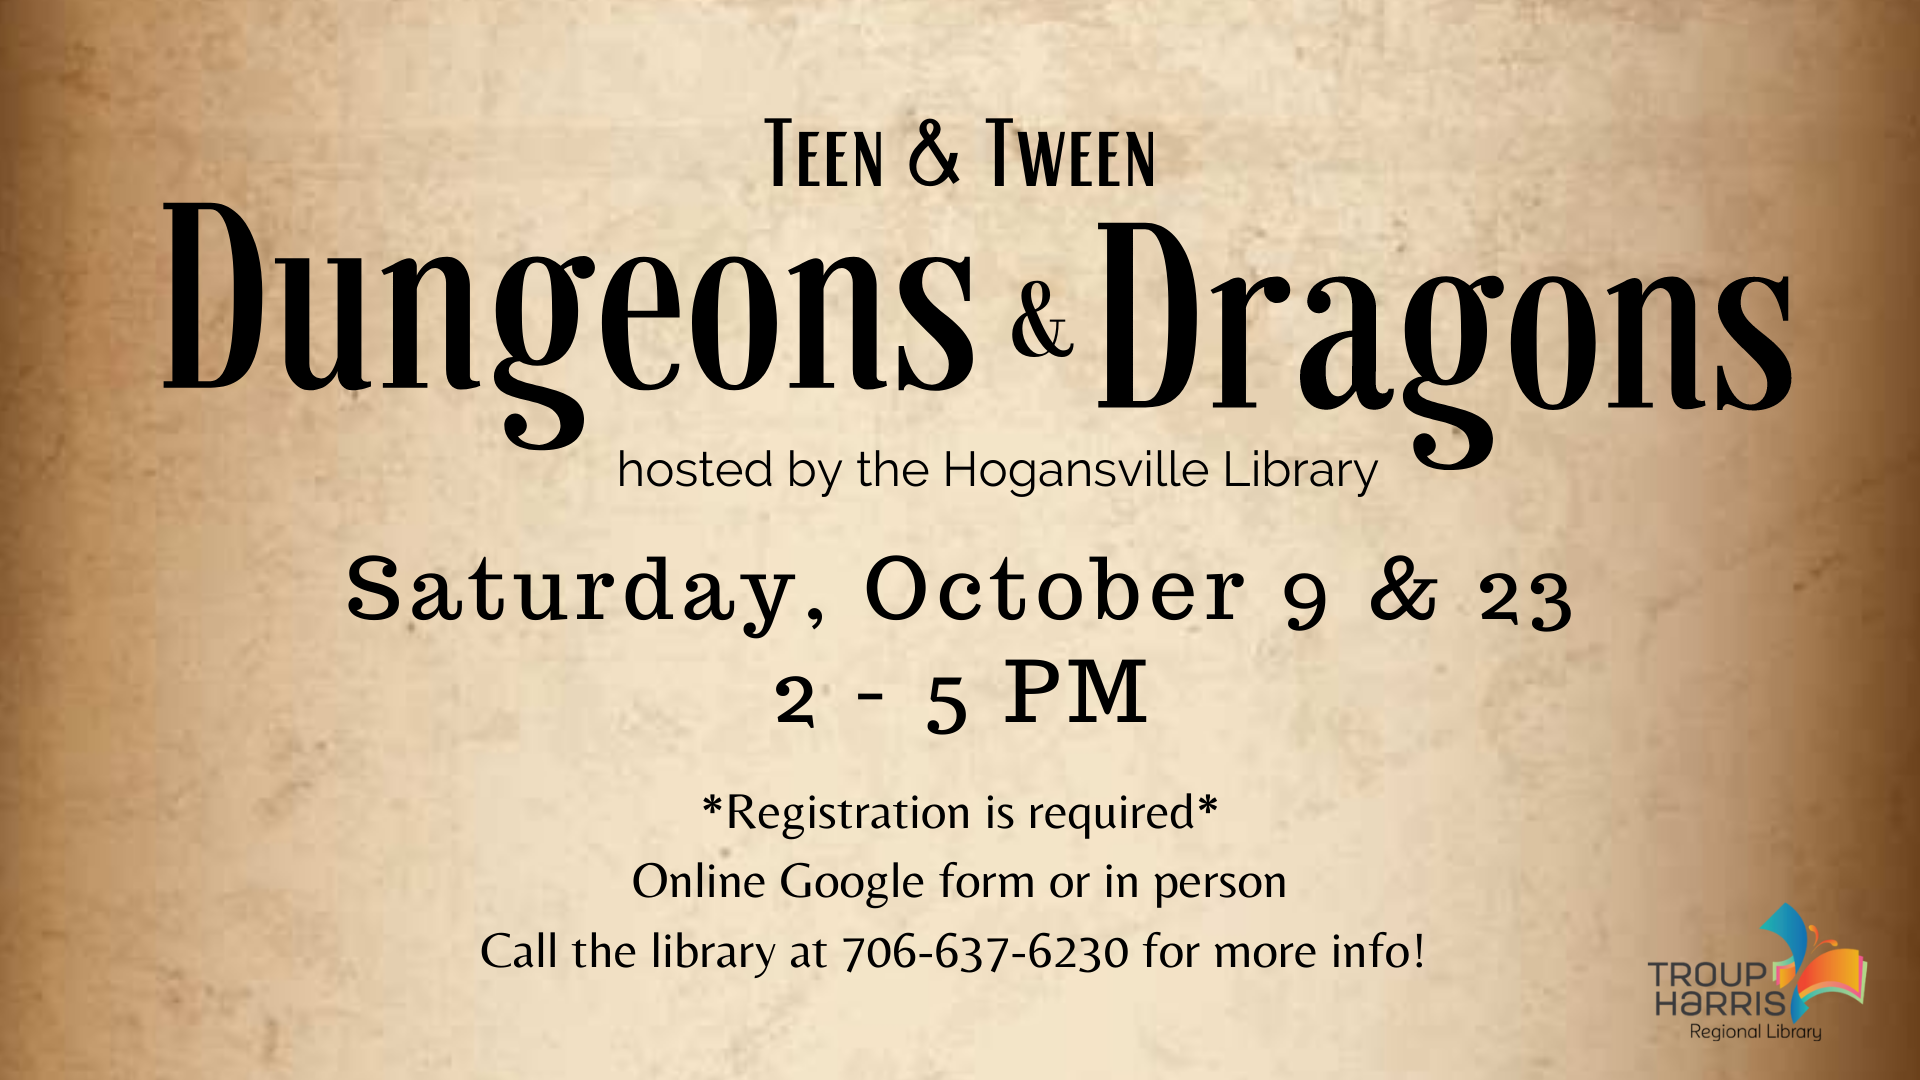 Join us for an in-person Dungeons & Dragons campaign on Saturday, October 9 from 2 - 5 PM! This event is open to middle and high school students. Those wishing to participate must fill out a Beginning Dungeons & Dragons packet to register. This can be obtained in person at the Hogansville Library or found online at this link! No library card required.